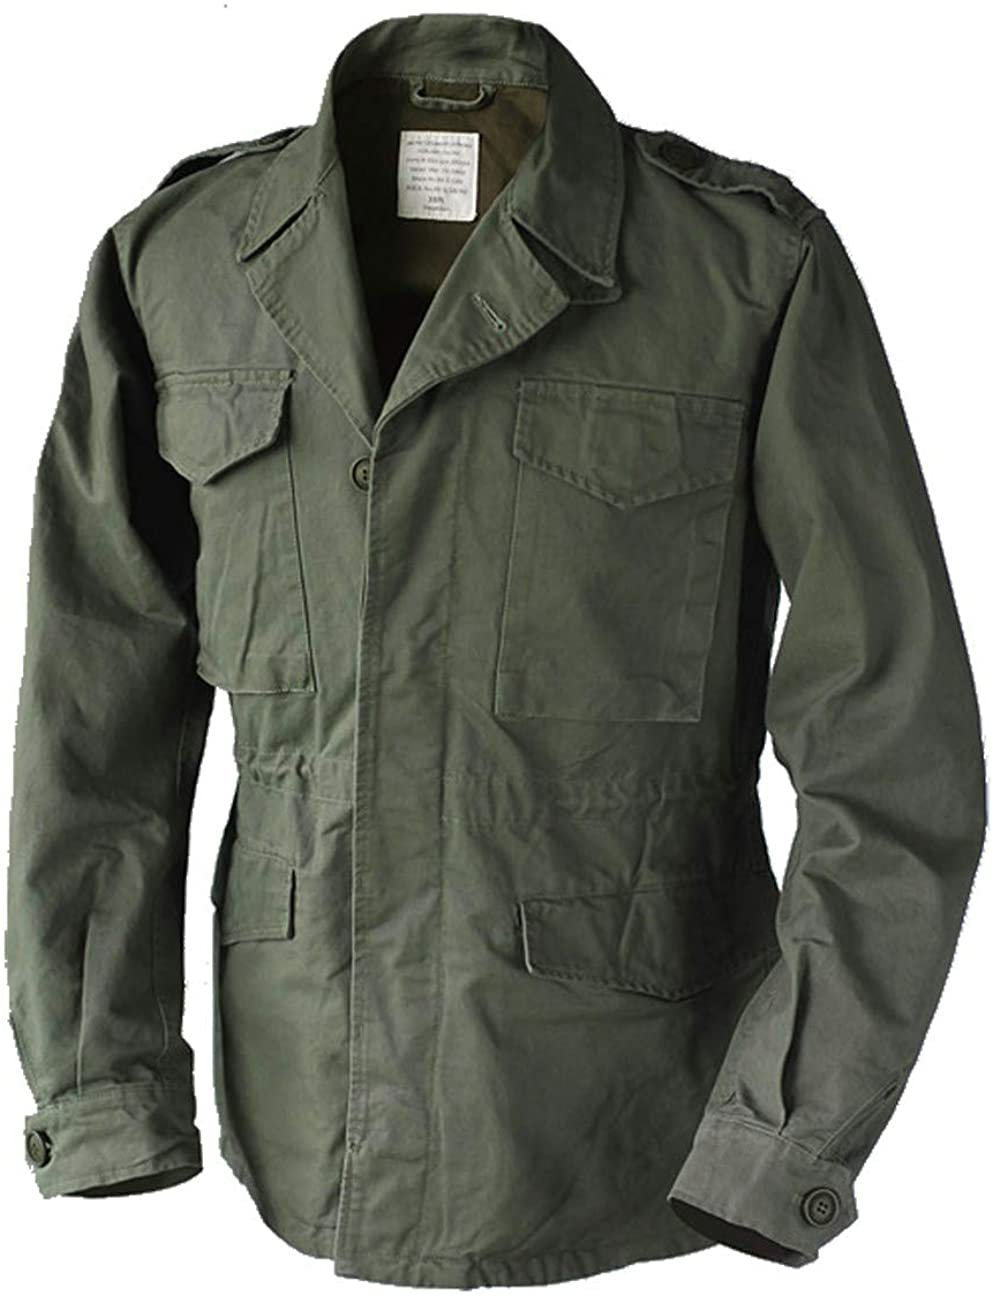 Army Field Jacket Vintage Men's Military Uniform Trench